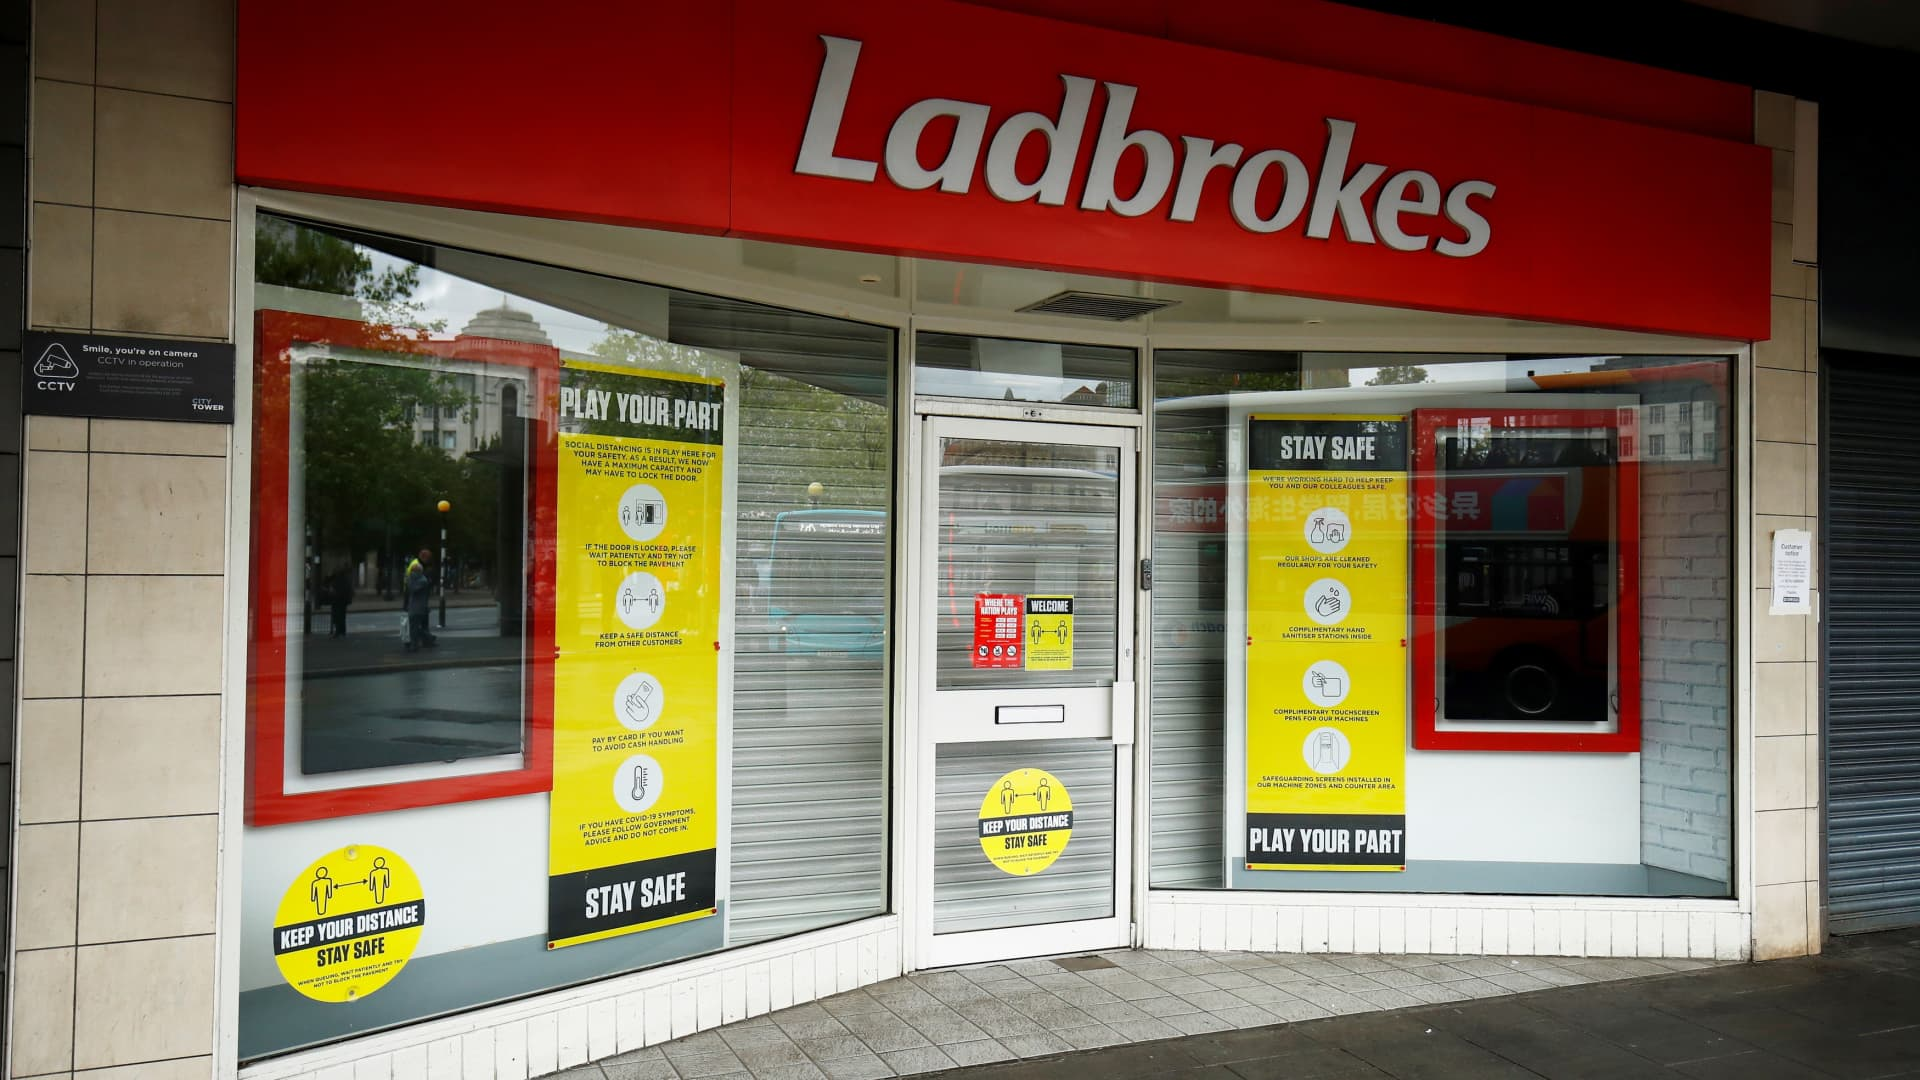 A closed Ladbrokes is seen in Manchester, following the outbreak of the coronavirus disease (COVID-19), Manchester, Britain, June 12, 2020.